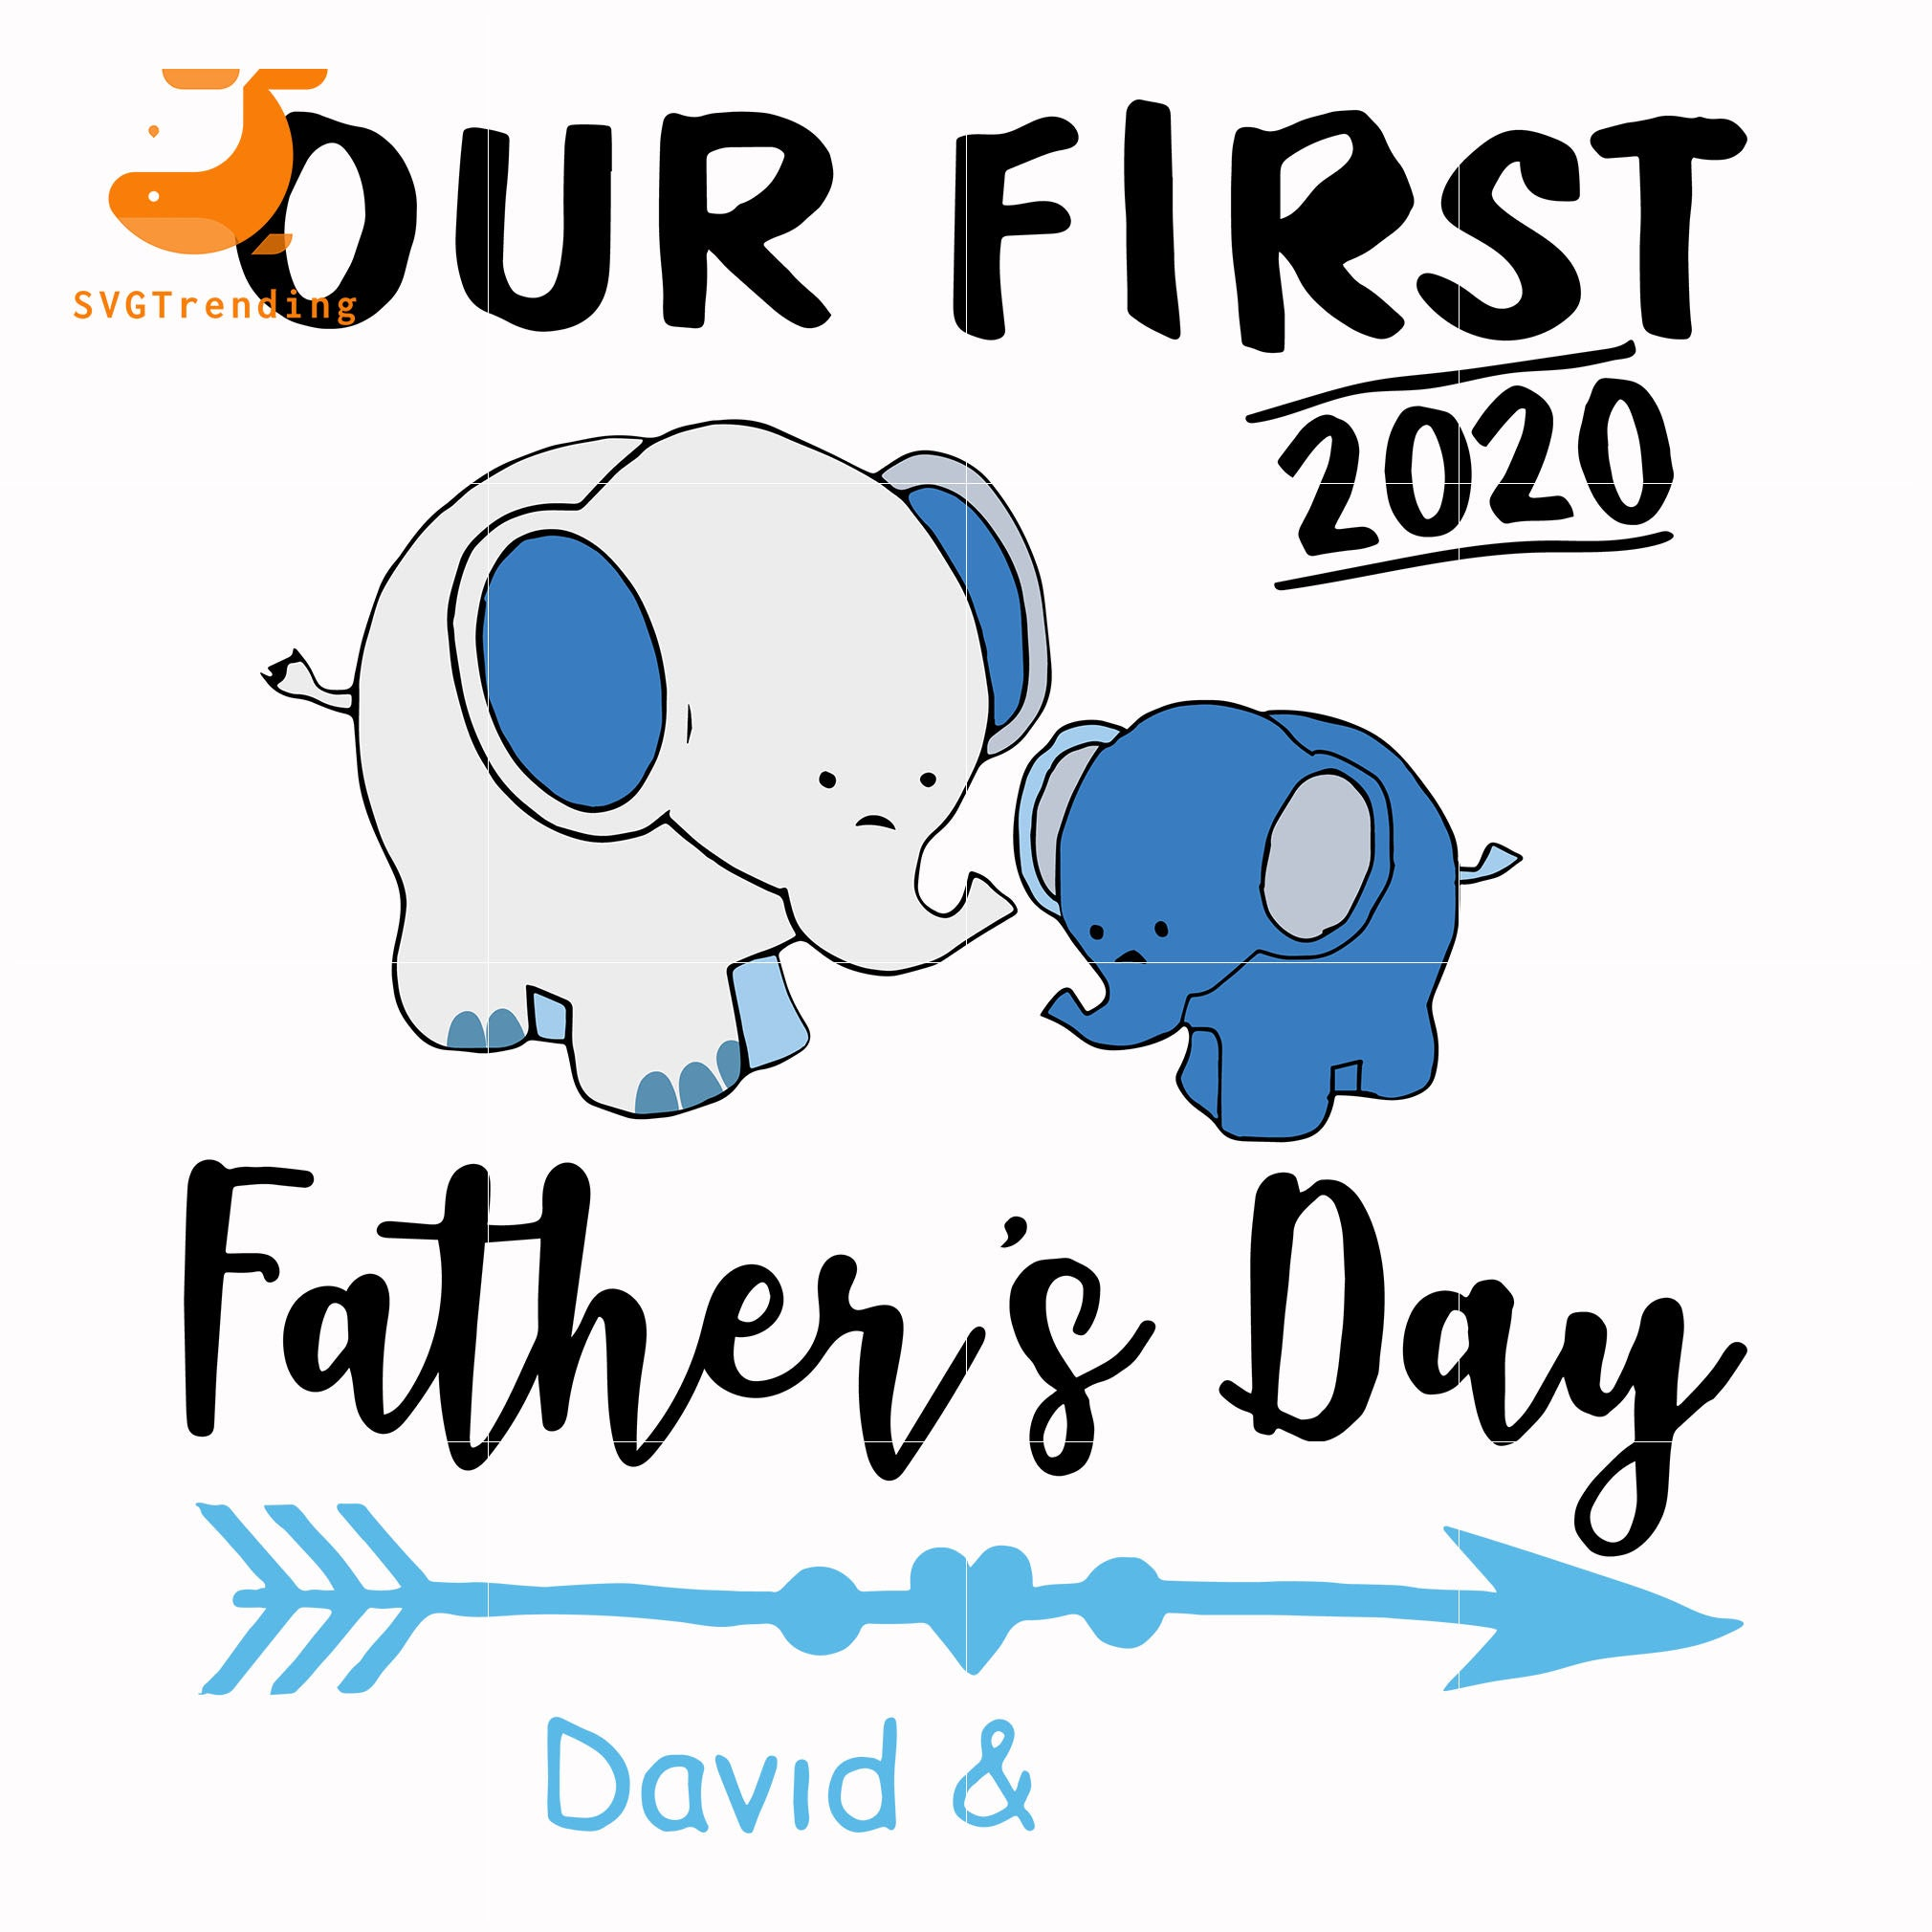 Free In catholic countries of europe. Our First Father Day Svg Png Dxf Eps Digital File Ftd141 Svgtrending SVG, PNG, EPS, DXF File